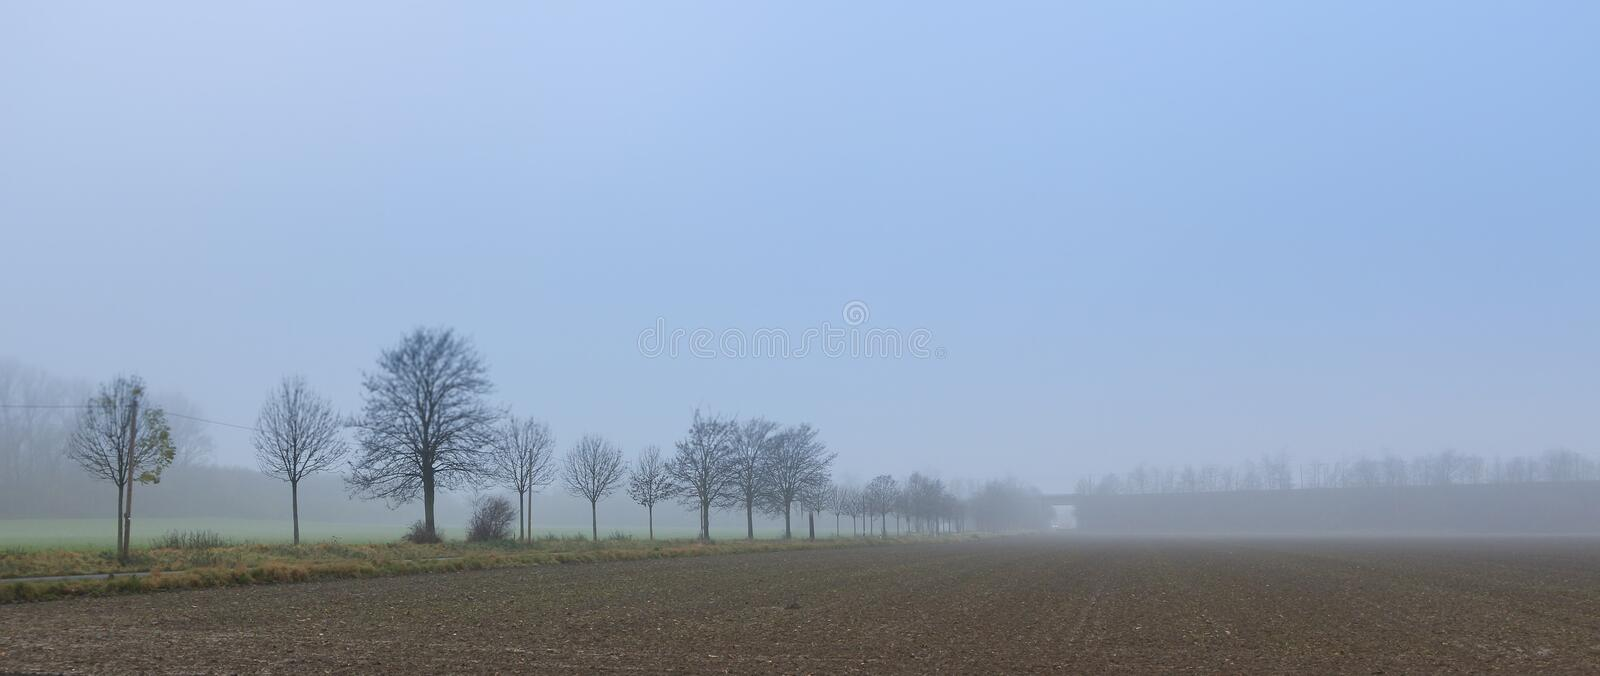 Fog on the field royalty free stock photography